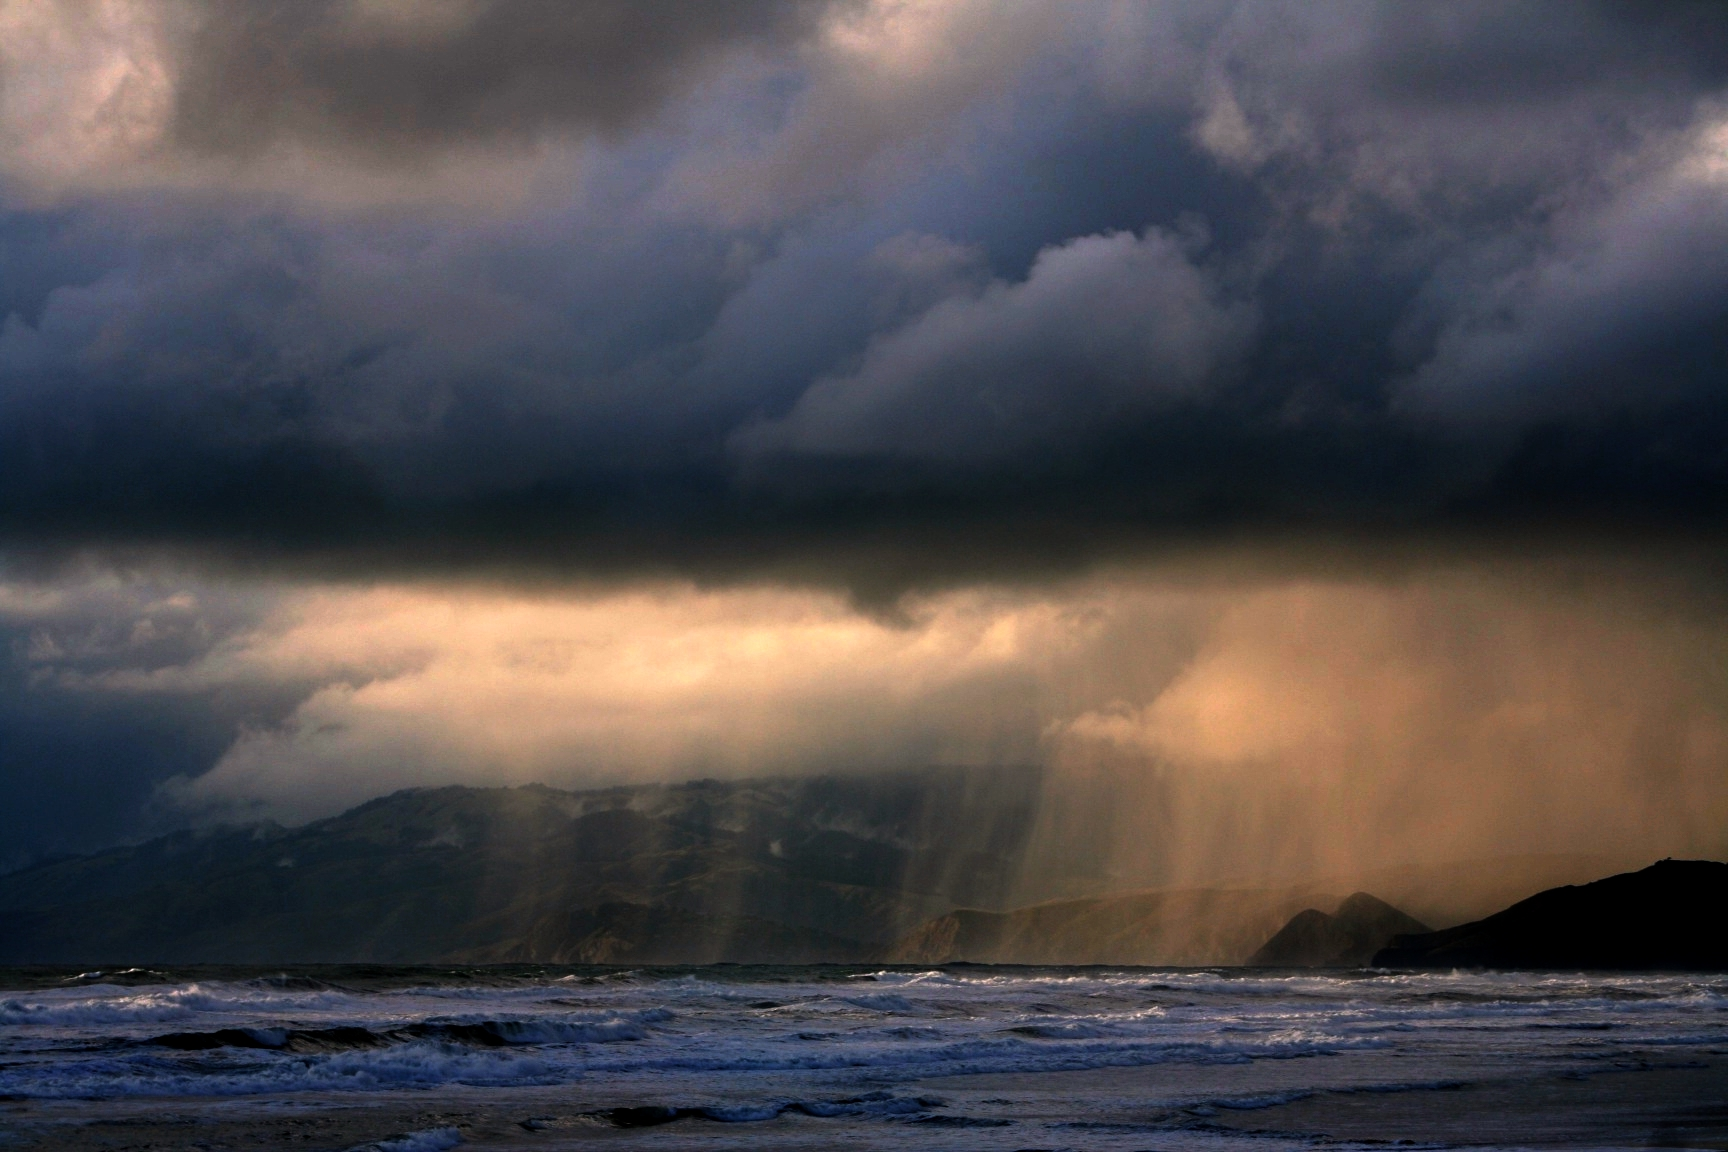 http://upload.wikimedia.org/wikipedia/commons/e/e2/Rain_ot_ocean_beach.jpg